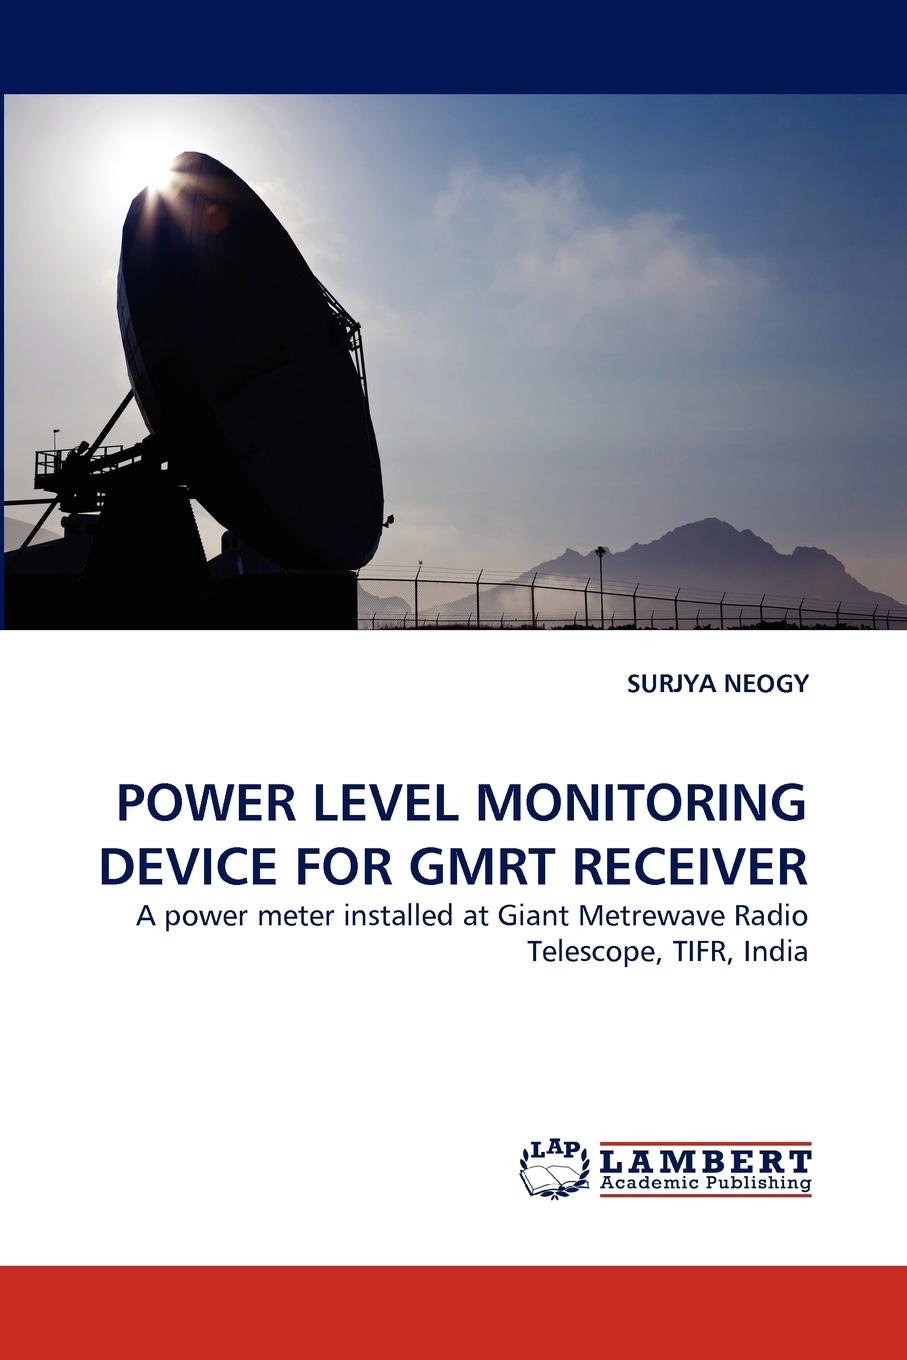 SURJYA NEOGY POWER LEVEL MONITORING DEVICE FOR GMRT RECEIVER амос гилат matlab теория и практика